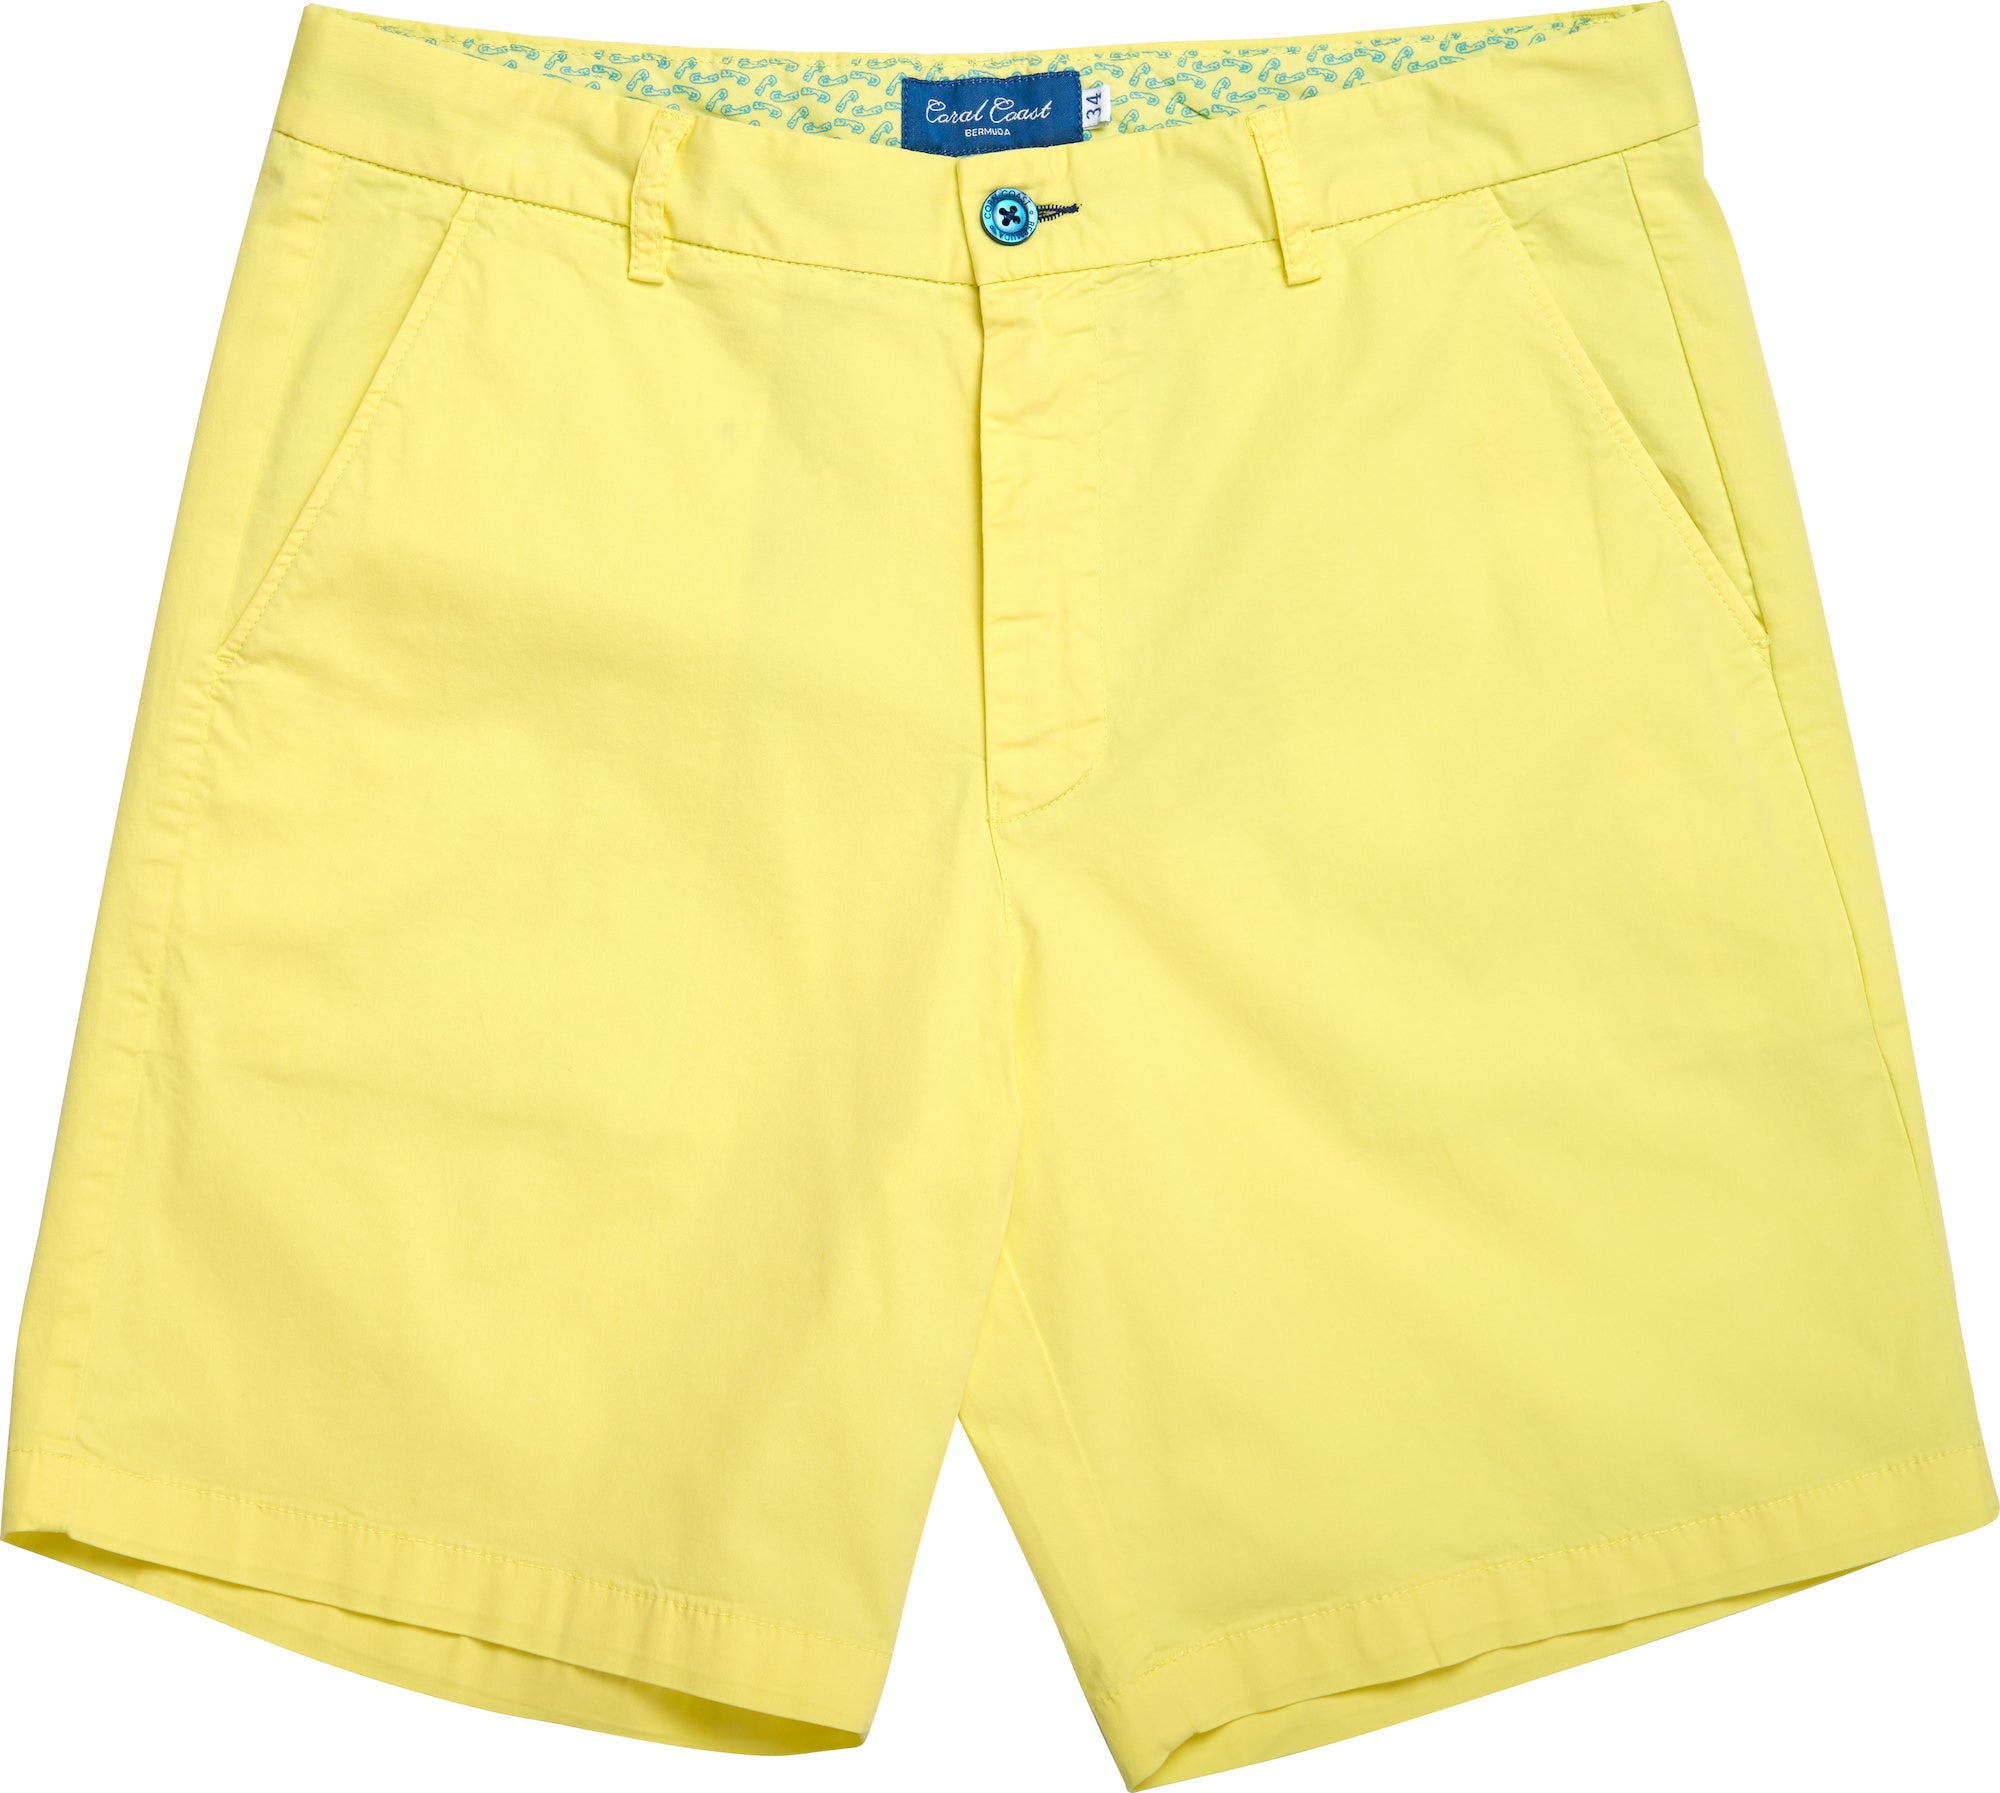 LIMELIGHT BERMUDA SHORT